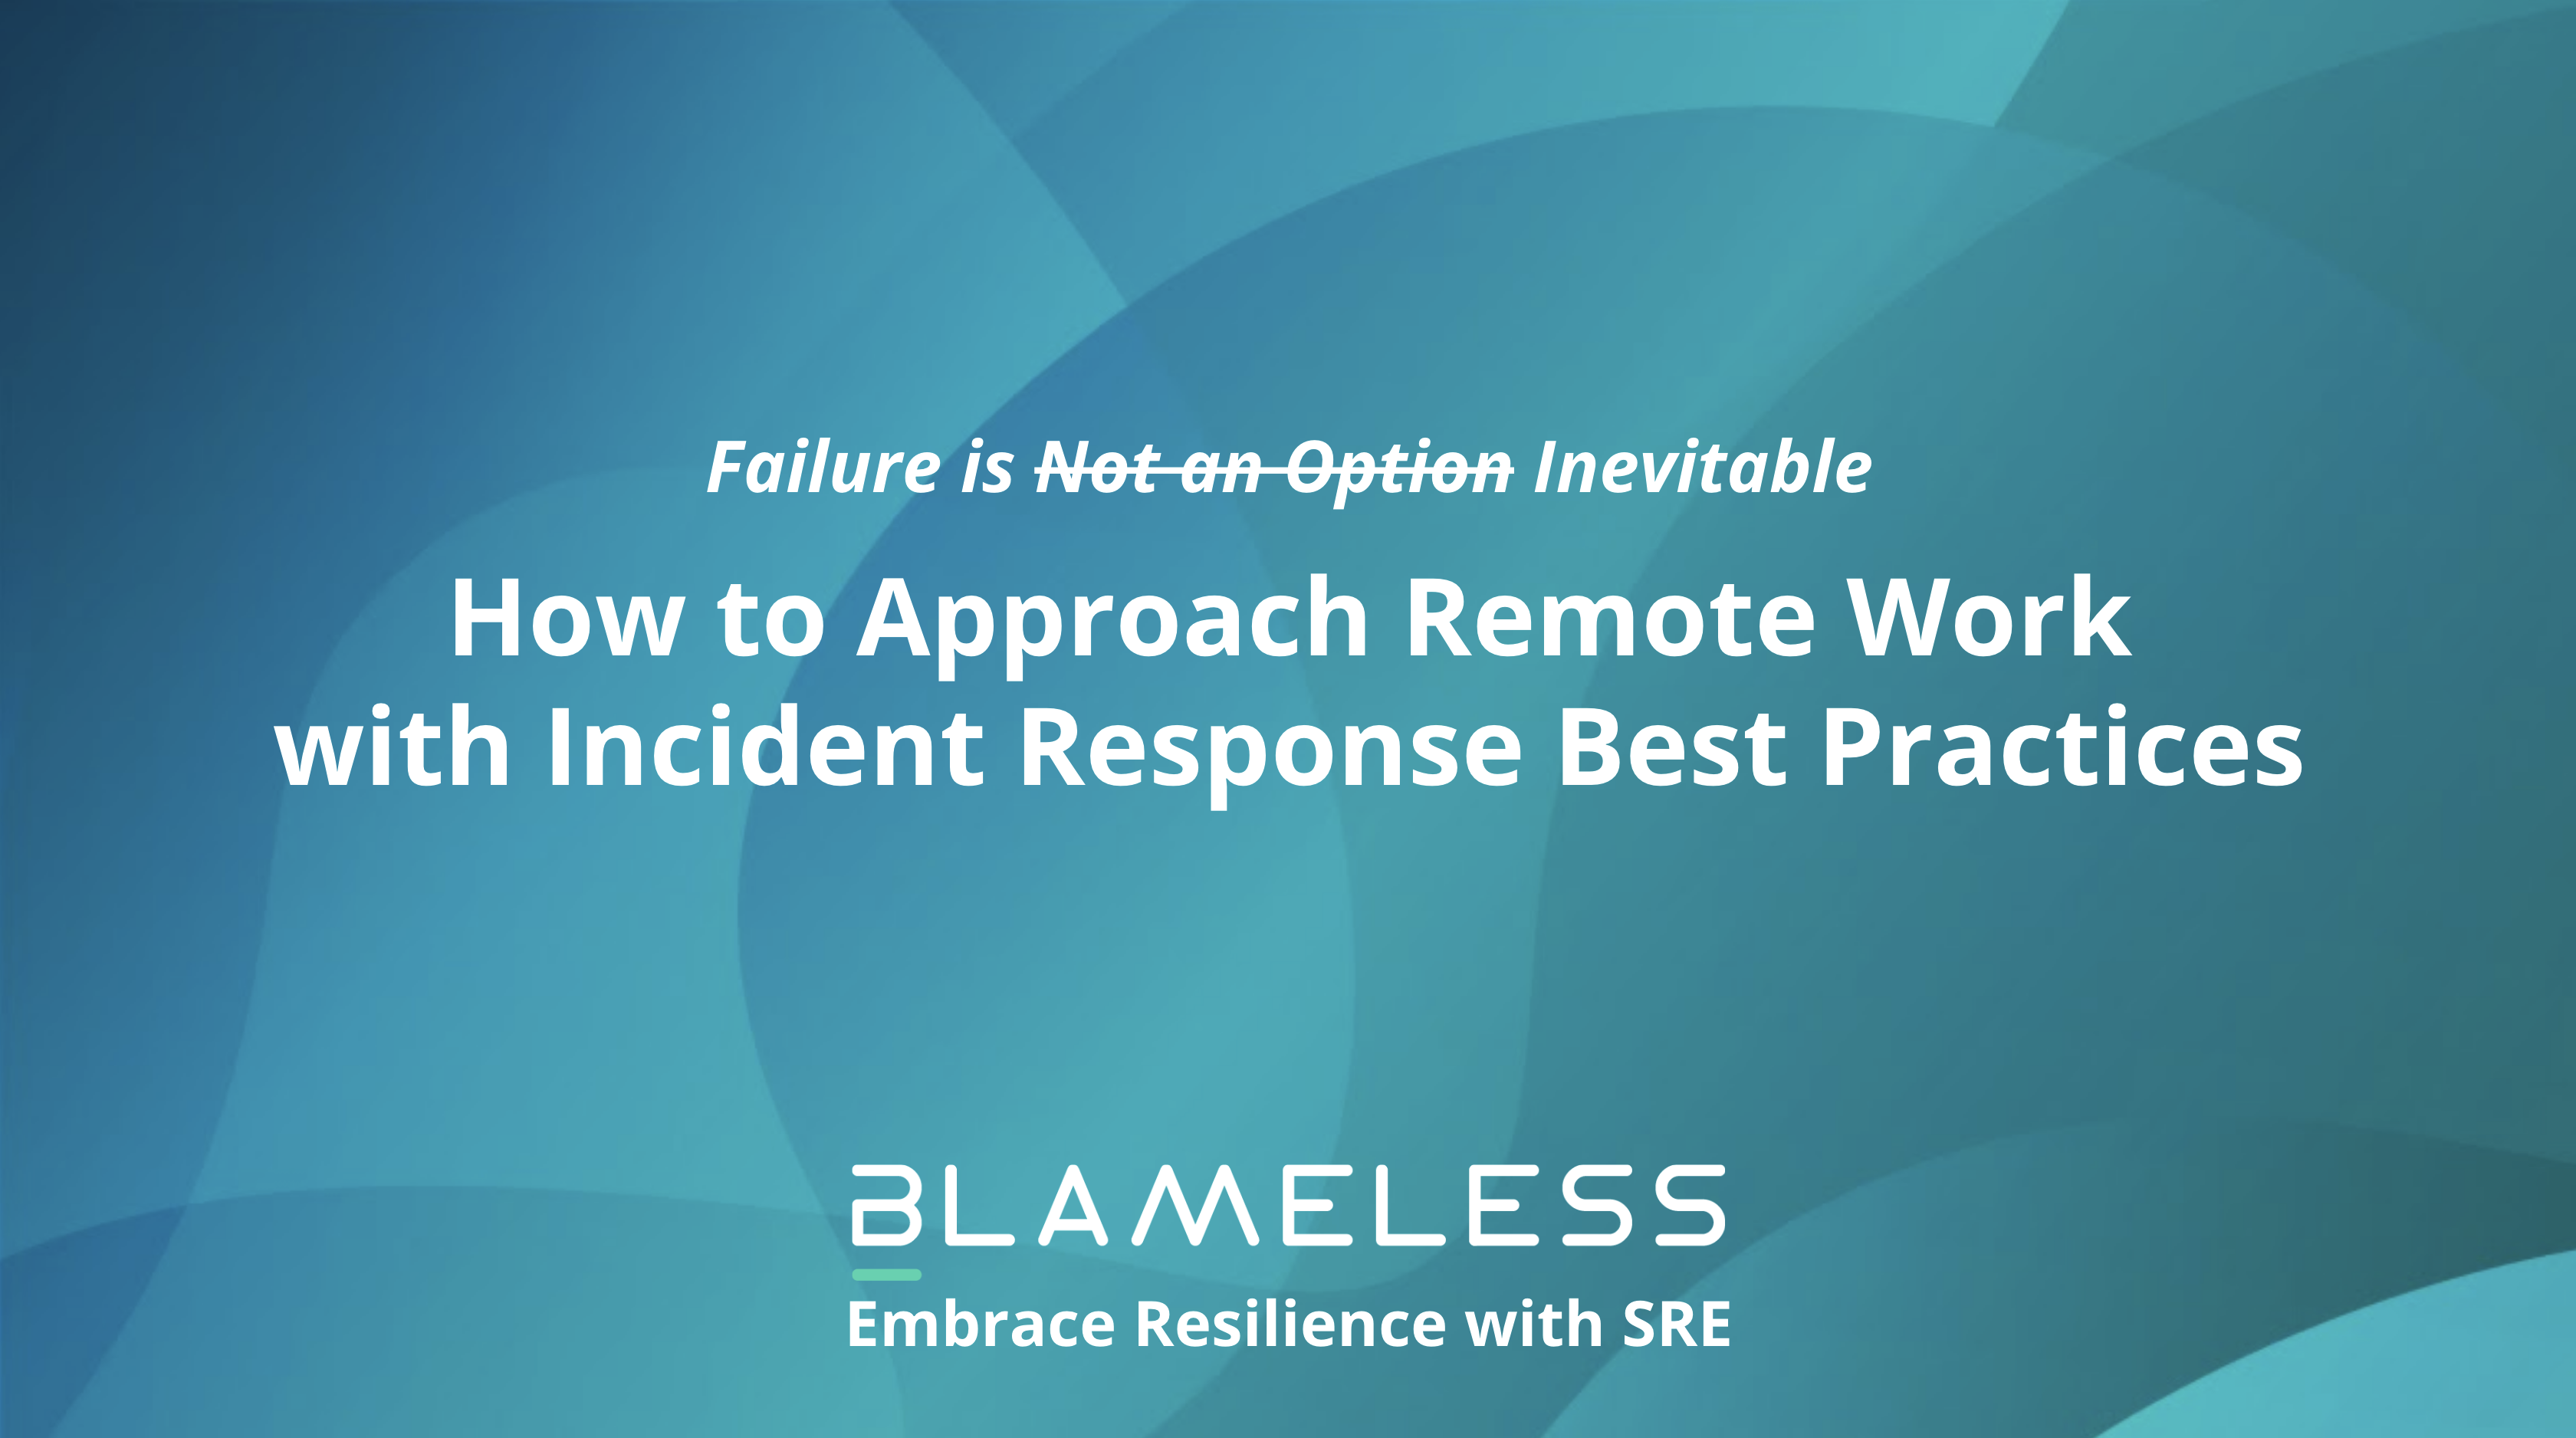 How to Approach Remote Work with Incident Response Best Practices